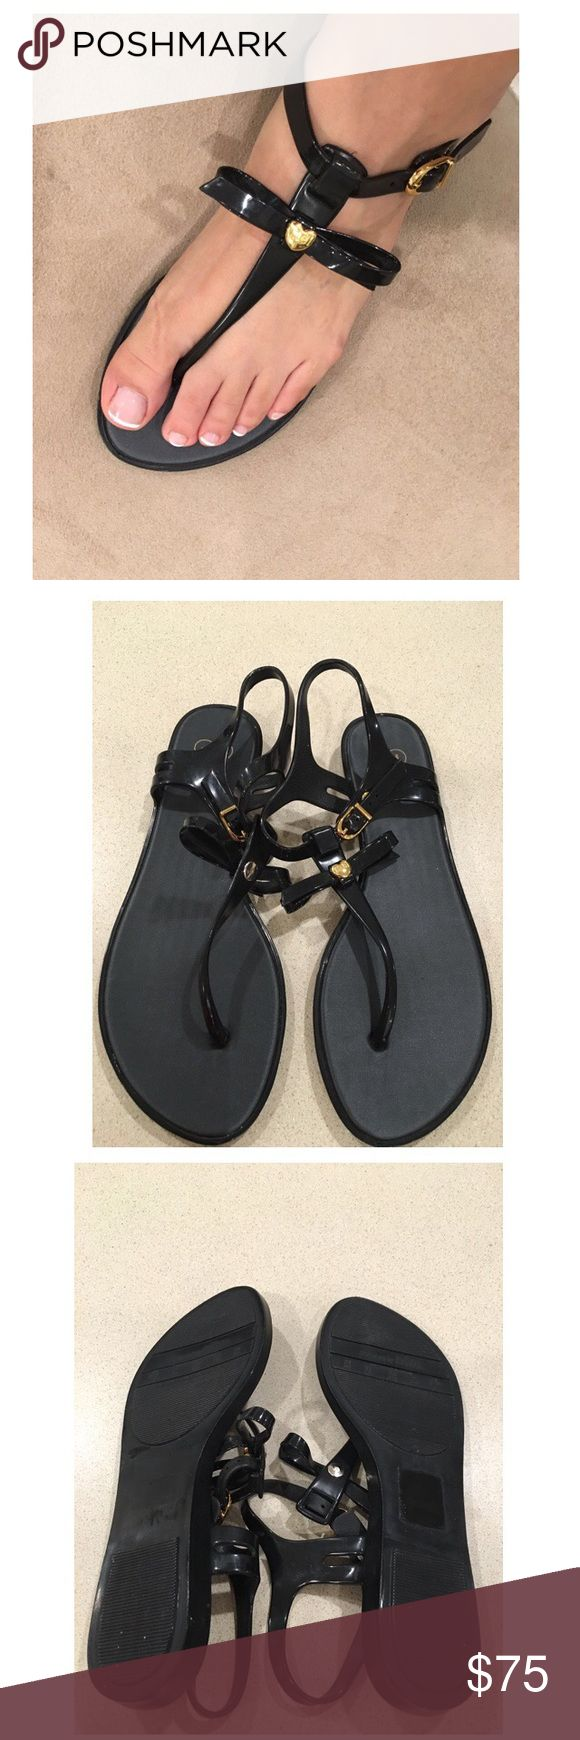 Mellisa Shoes woman's Sandals Melissa Solar woman's sandals size 7 Black Classic Solar jelly sandals are made for confortable and flexible Melflex plastic in glossy black. . The sandals are adorned with bow and golden heart ❤️ on elegant toe strap.Looks New Perfect Condition Melissa Shoes Sandals